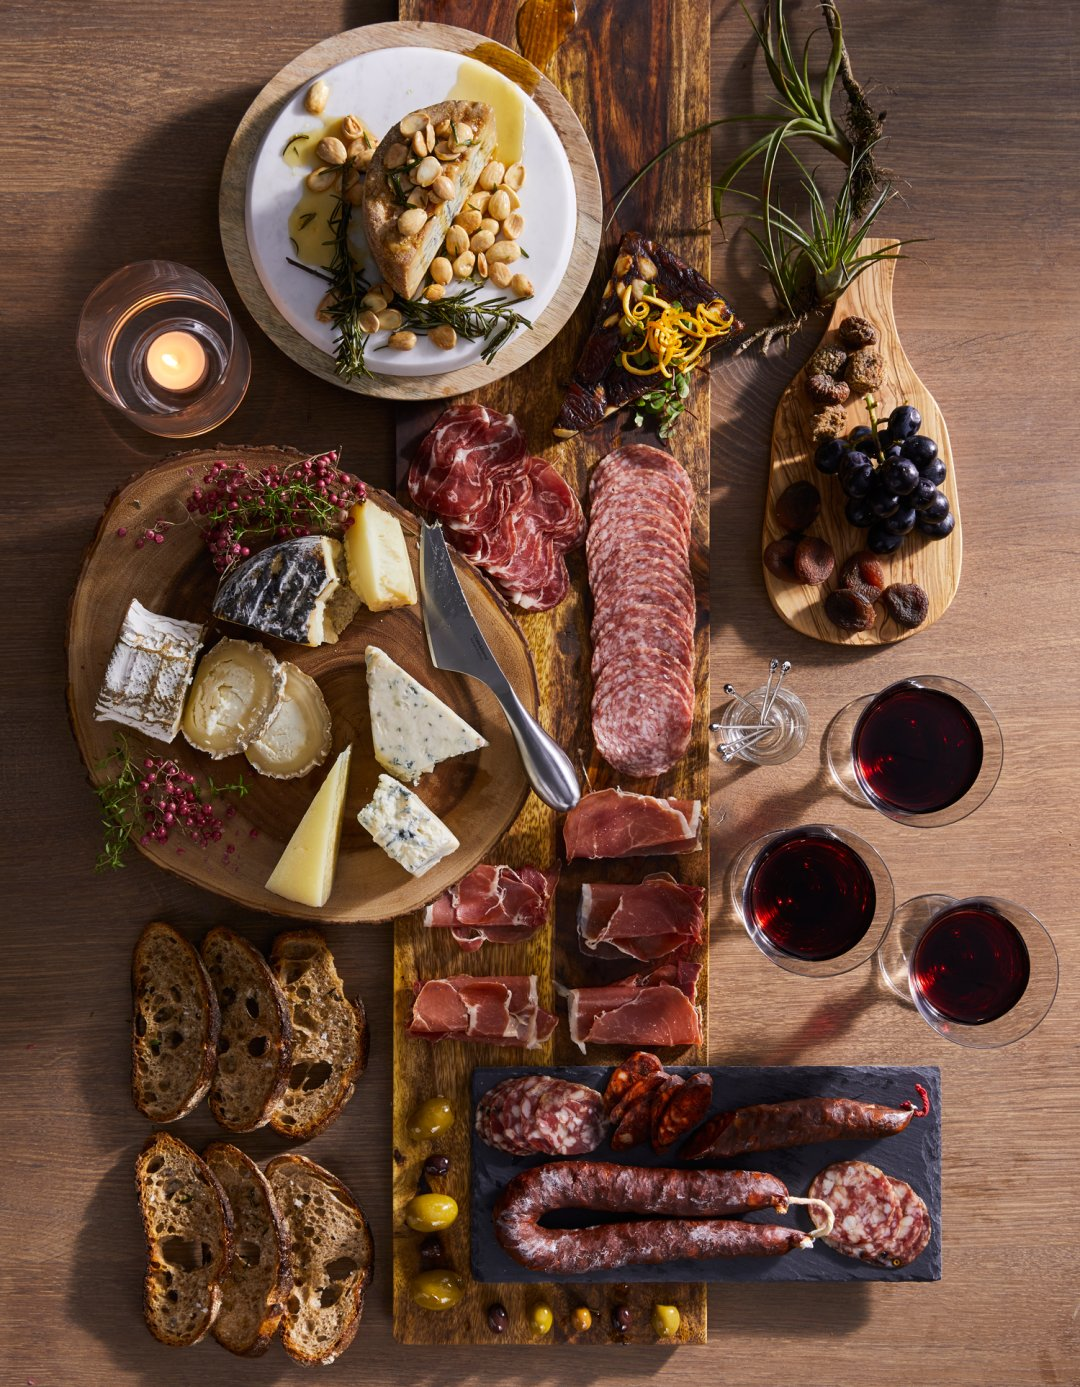 Selection of cheese and charcuterie boards